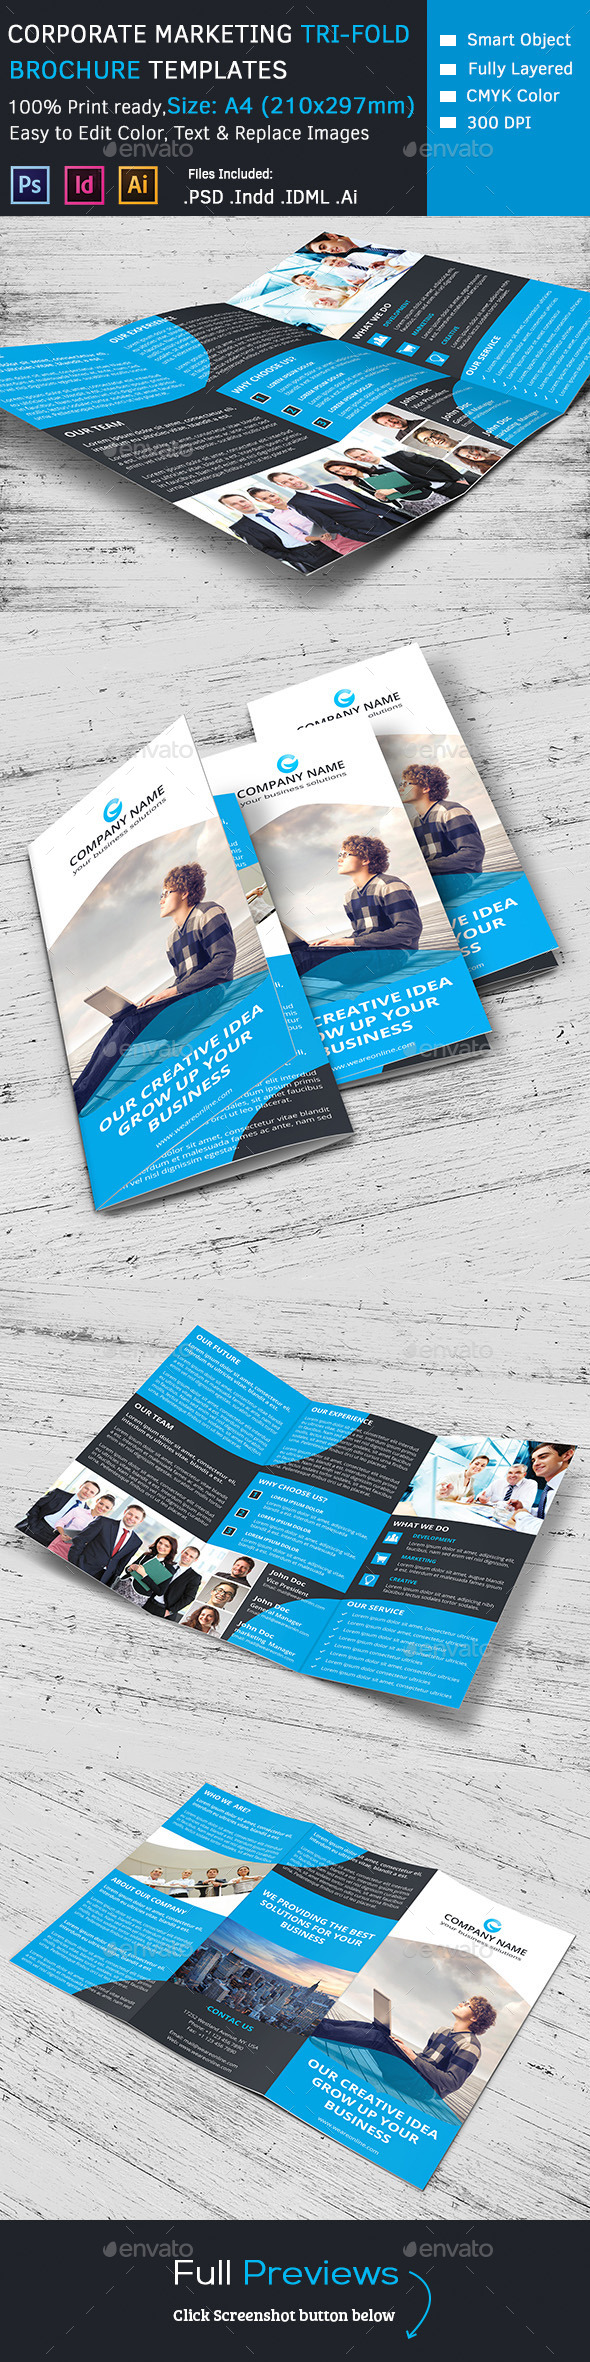 GraphicRiver Corporate Marketing Tri-Fold Brochure 10050940